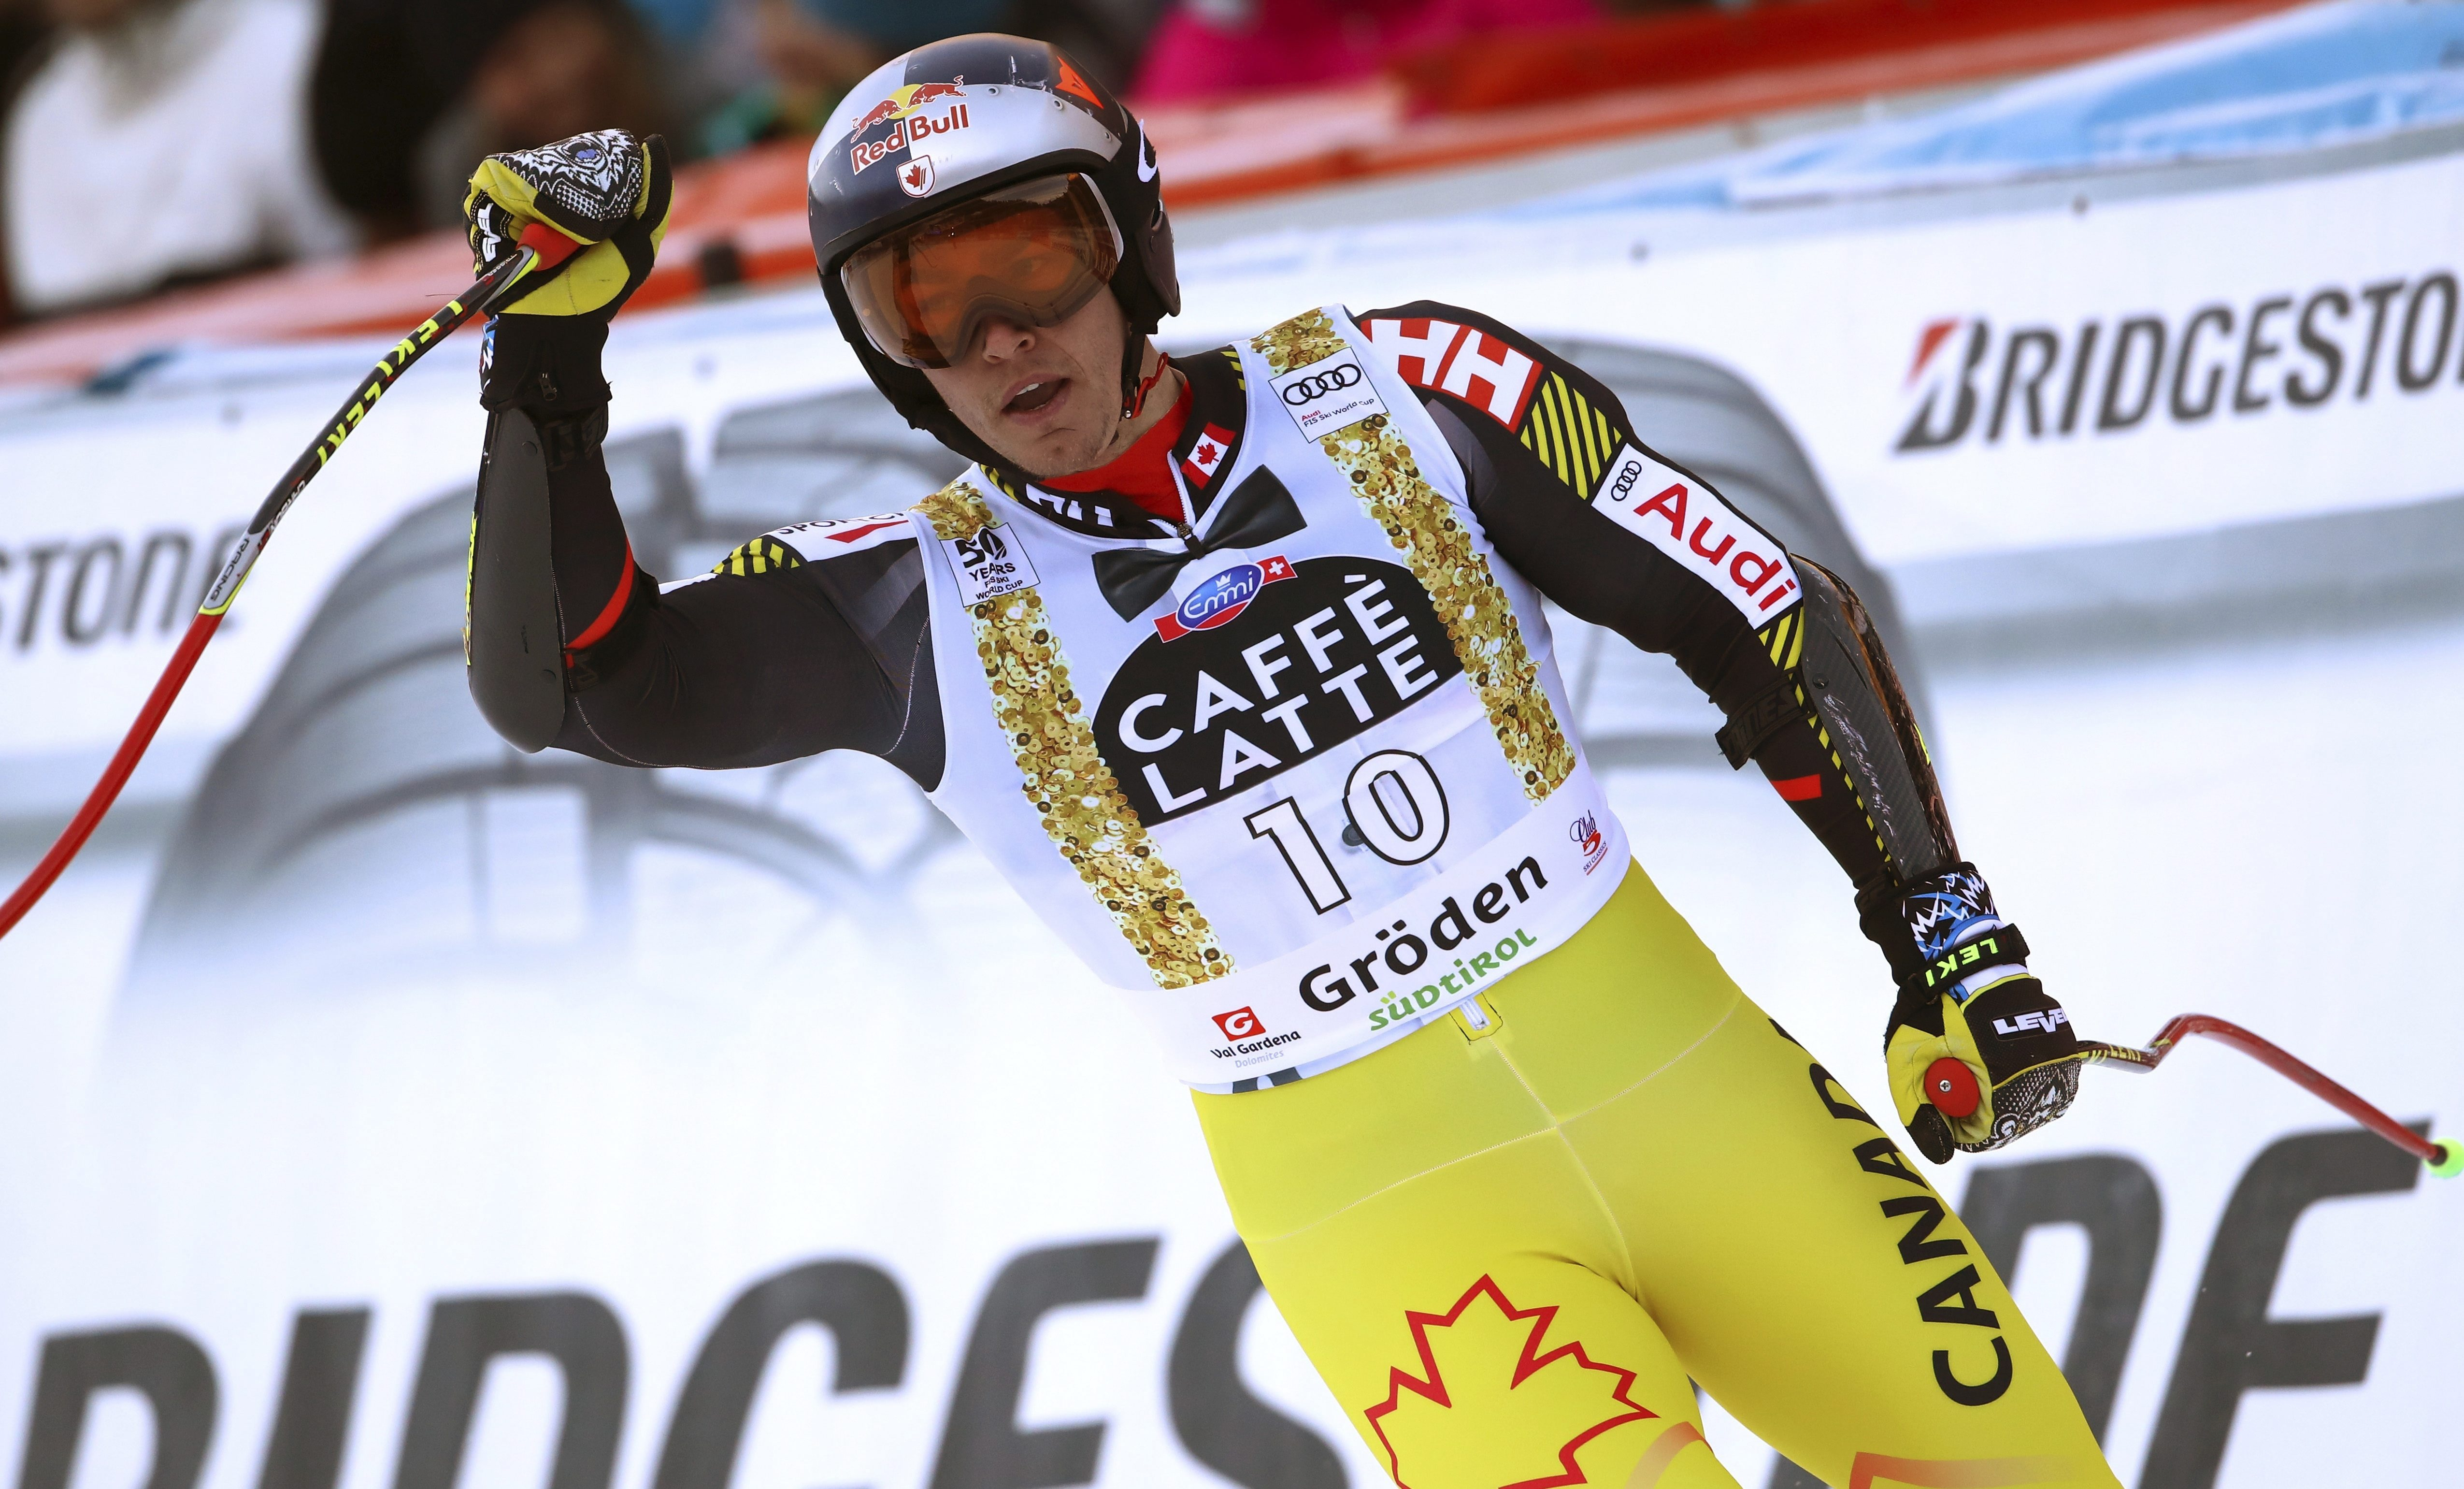 Canada's Erik Guay celebrates after completing an alpine ski, men's World Cup super-G, in Val Gardena, Italy, Friday, Dec. 16, 2016. (AP Photo/Alessandro Trovati)